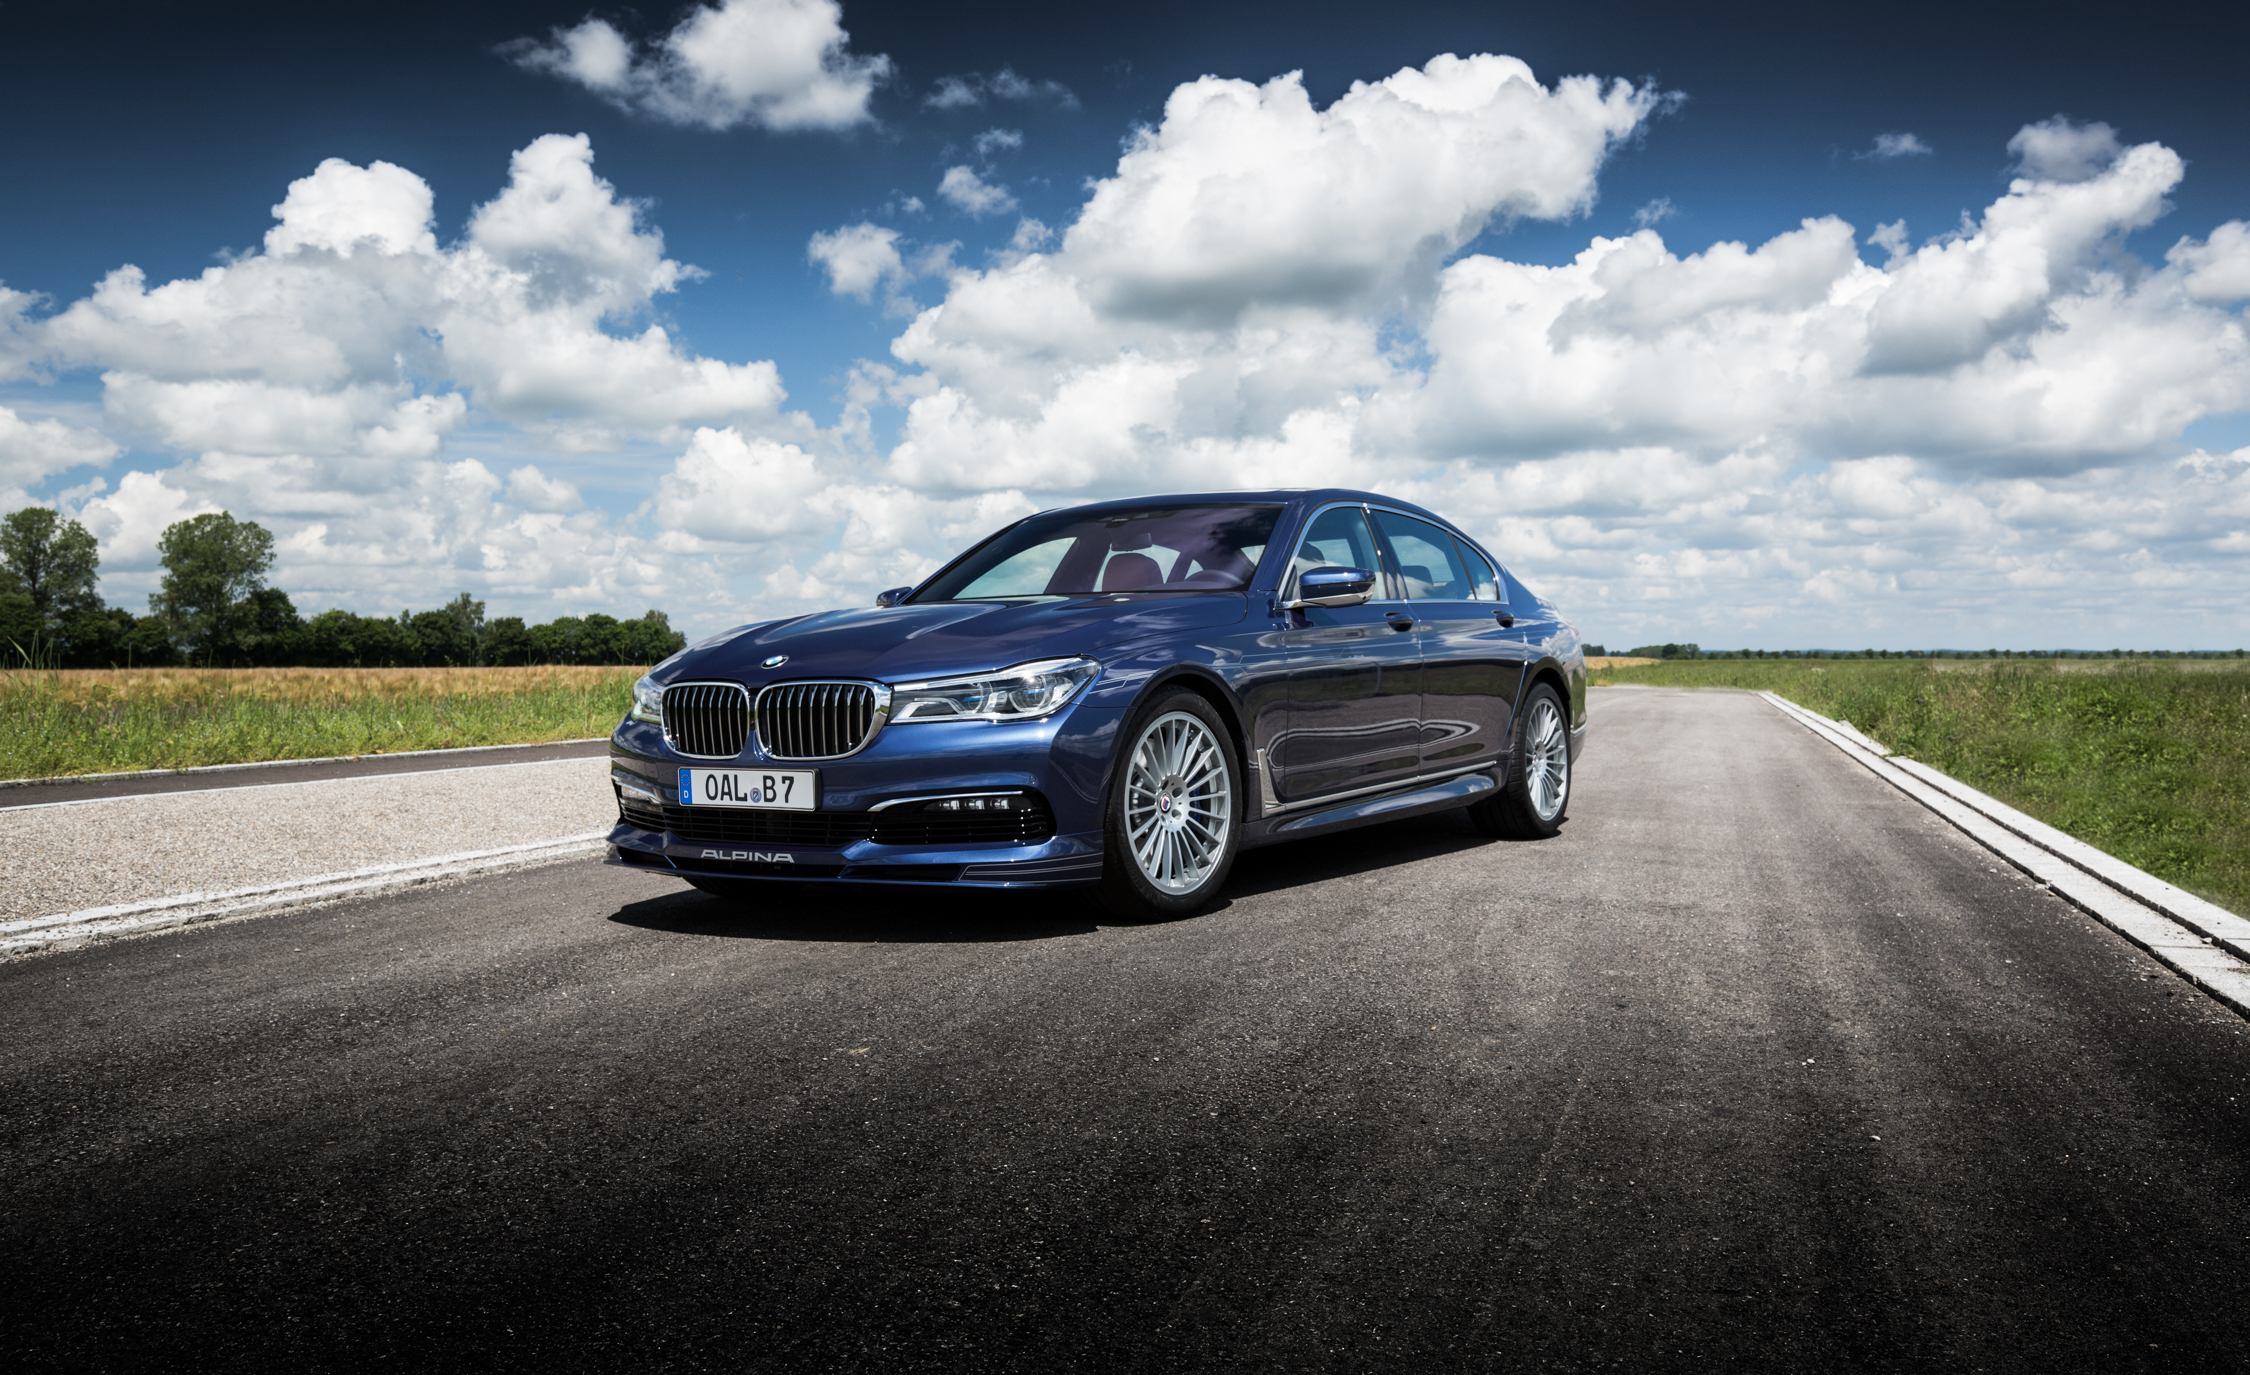 2017 BMW Alpina B7 Exterior (Photo 4 of 45)